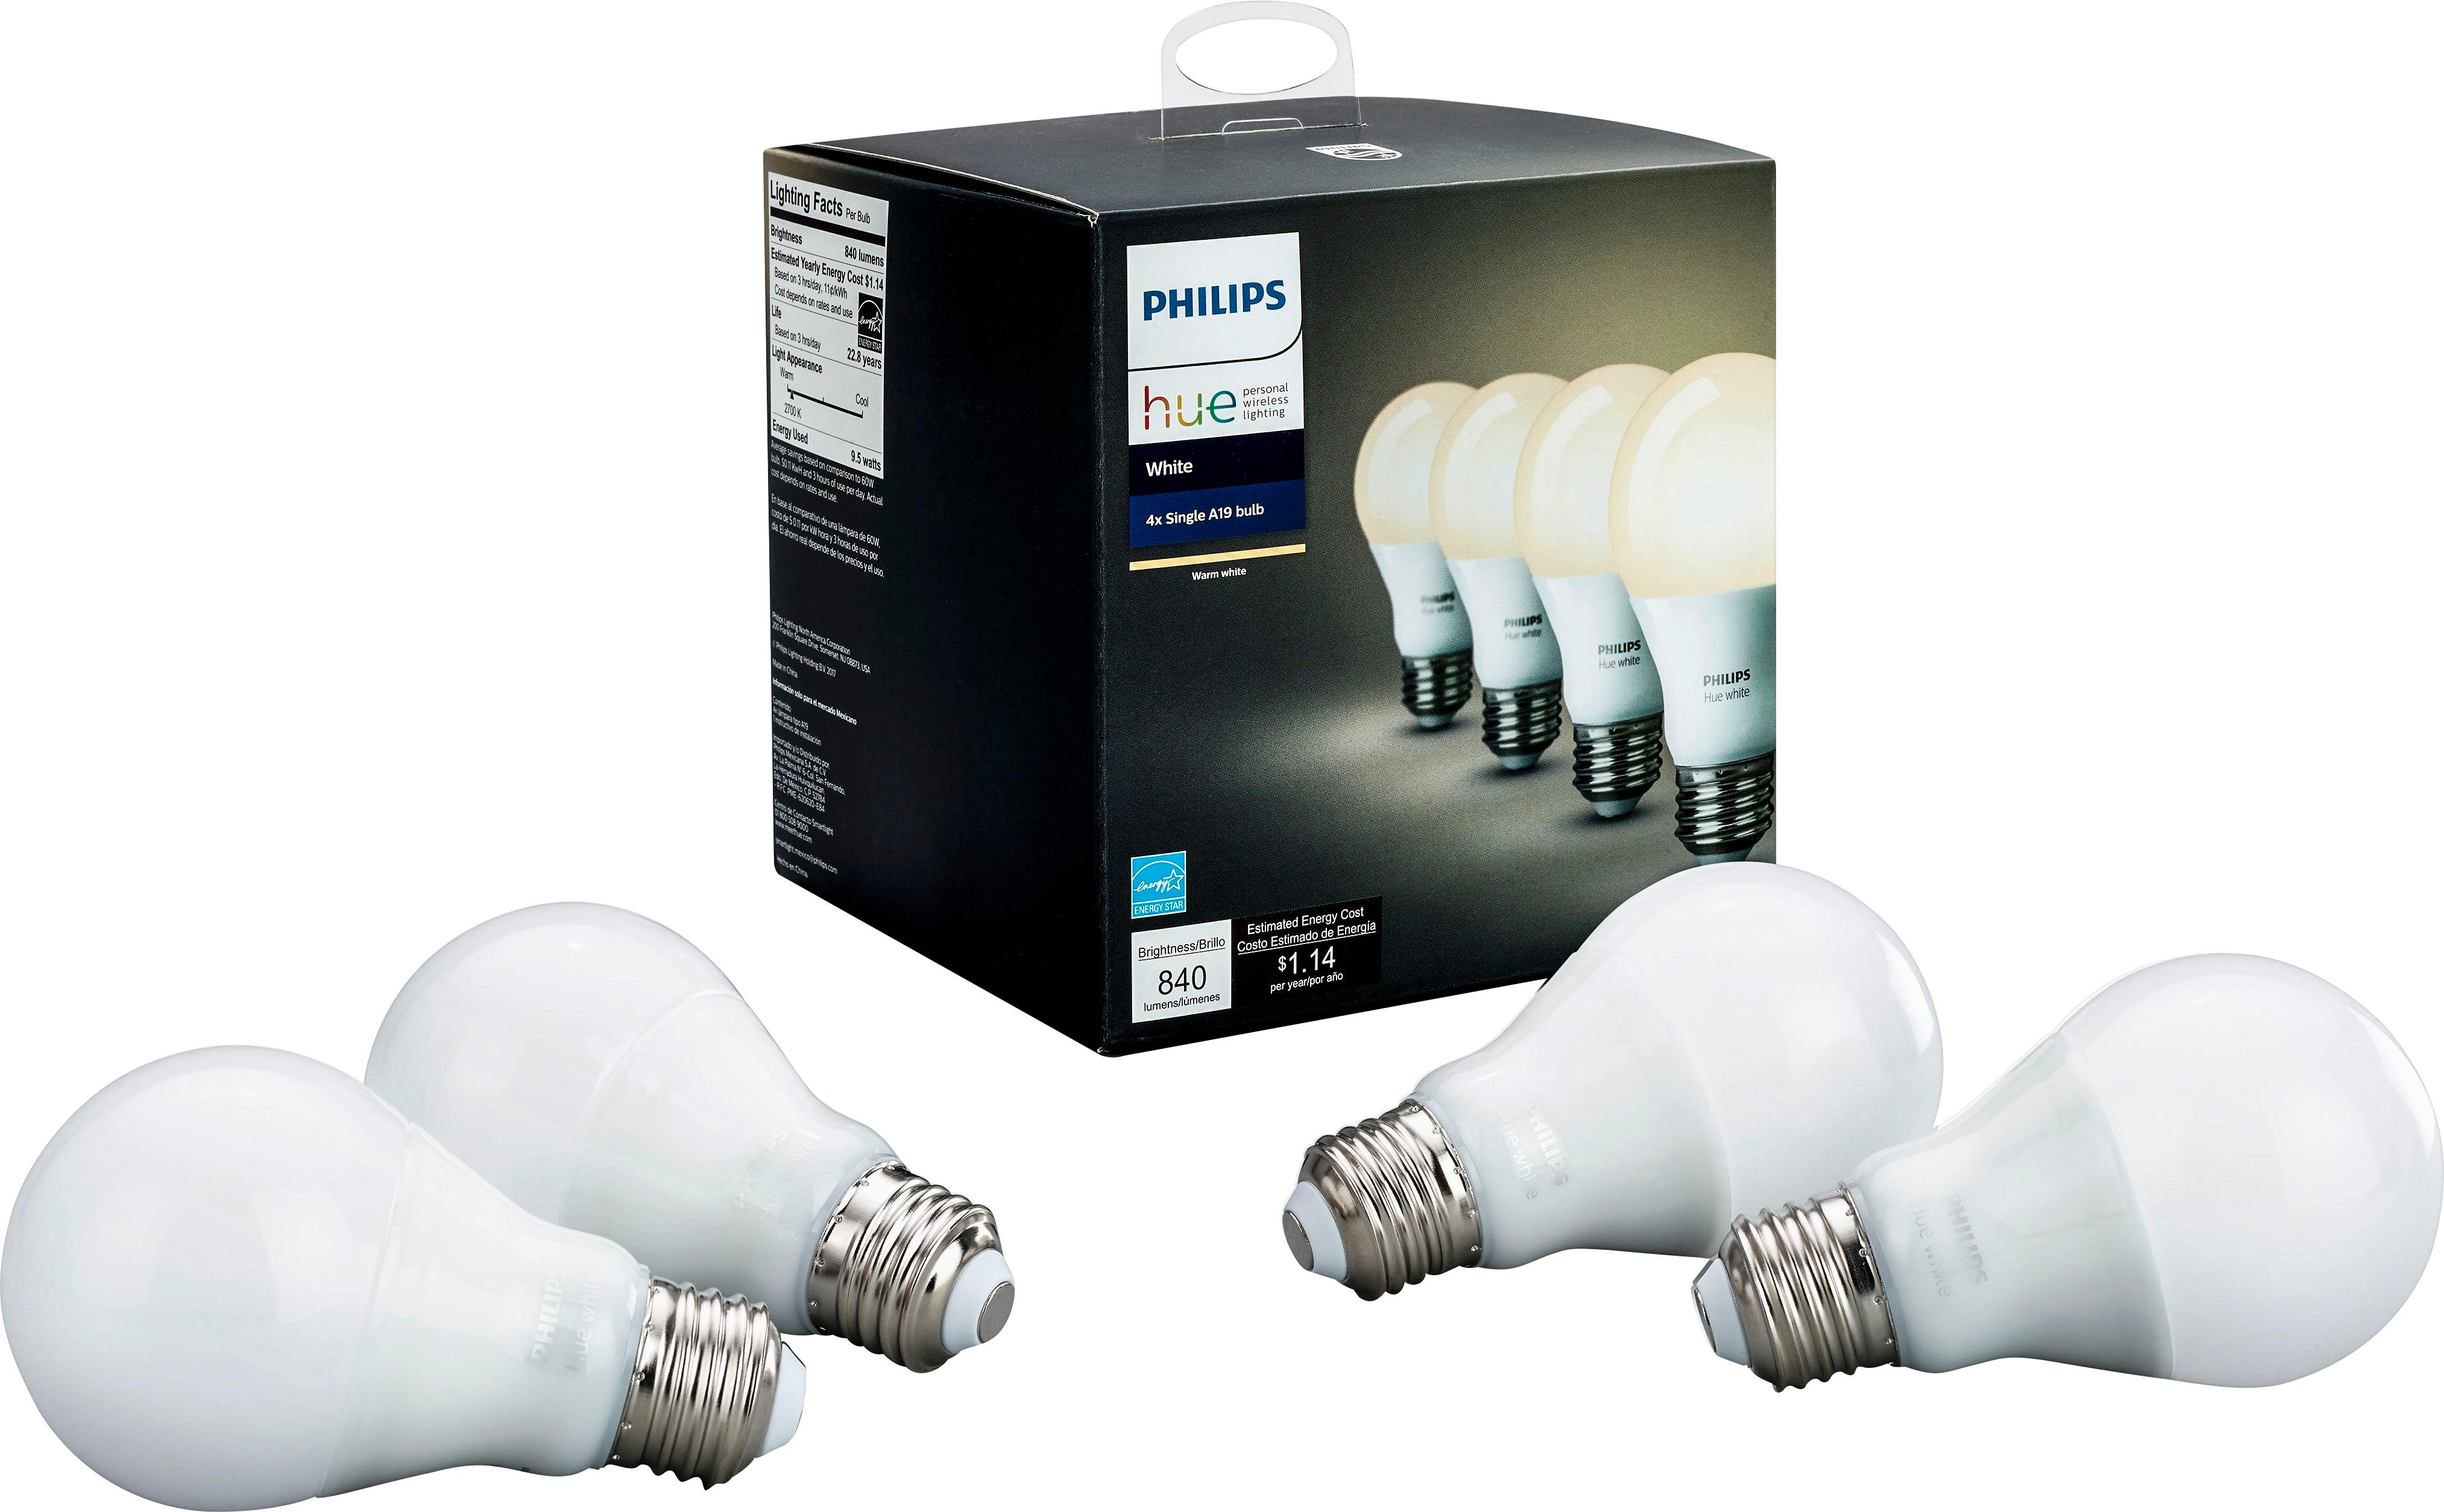 Smart Led Bulb Details About Philips Hue White A19 Wi Fi Smart Led Bulb 4 Pack White